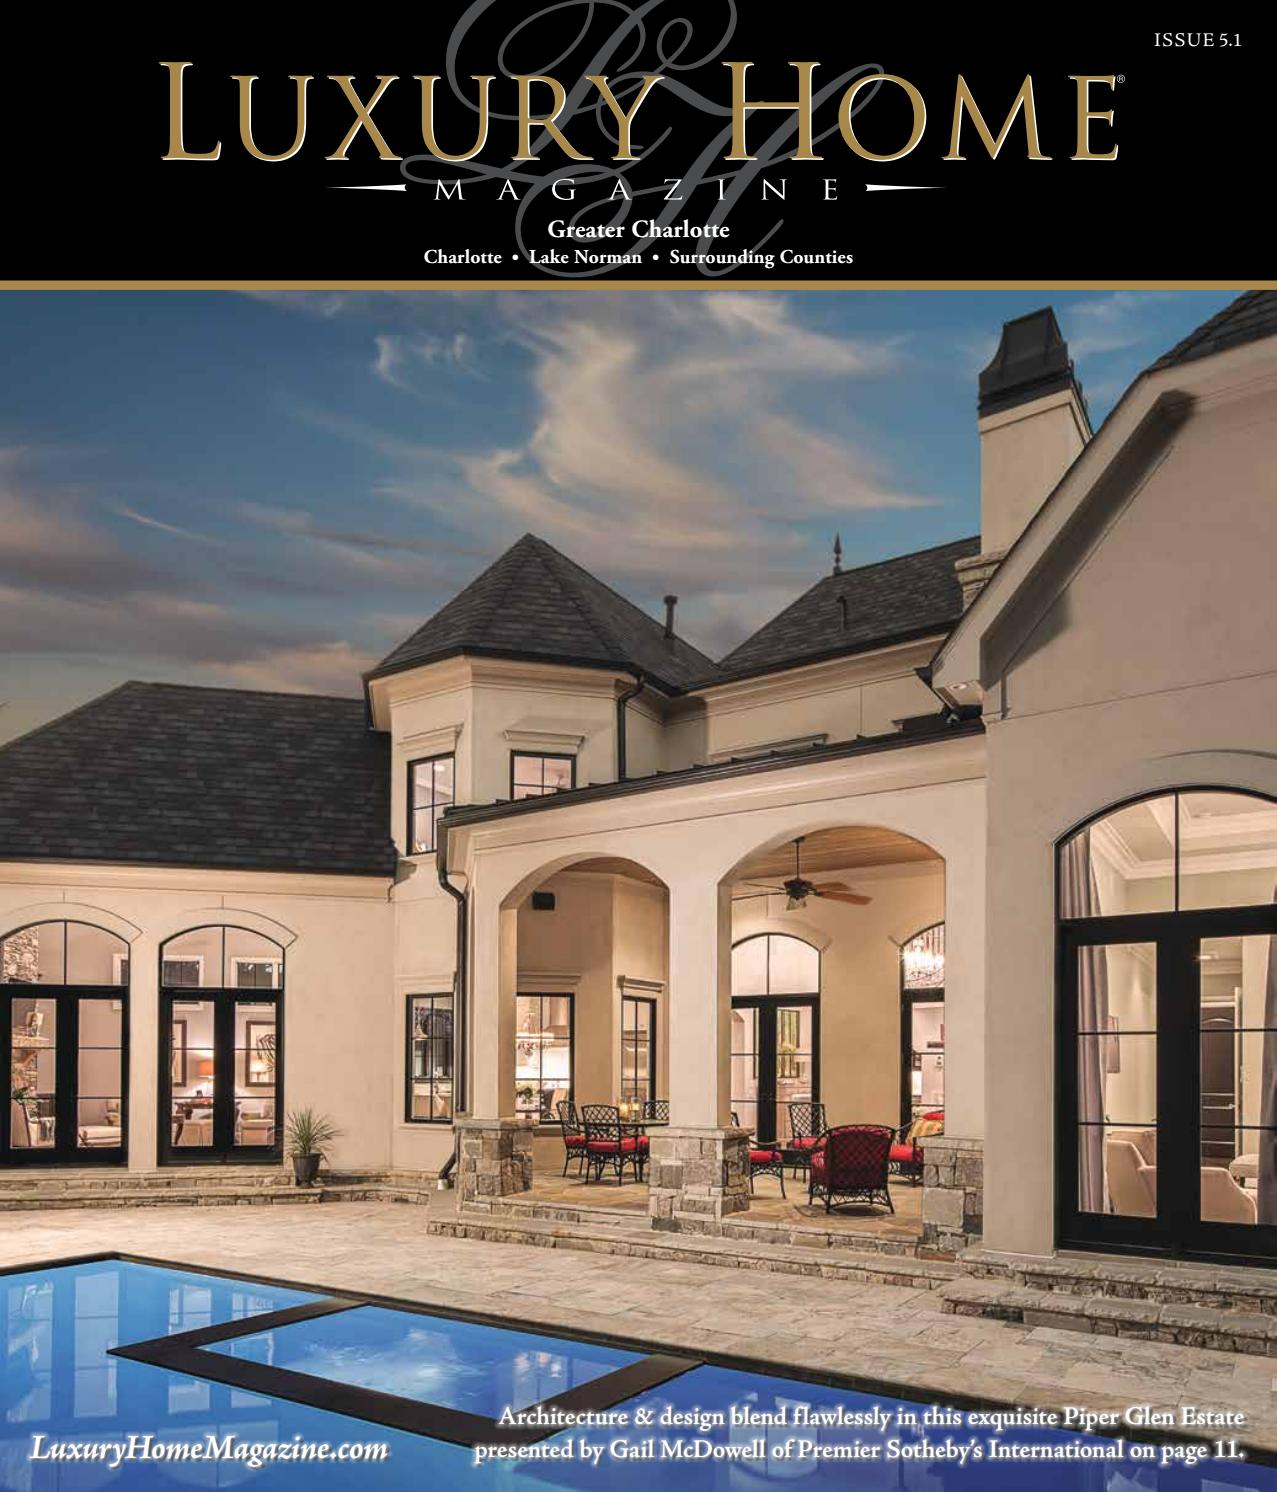 Luxury Home Magazine Greater Charlotte Issue 5.1 By Luxury